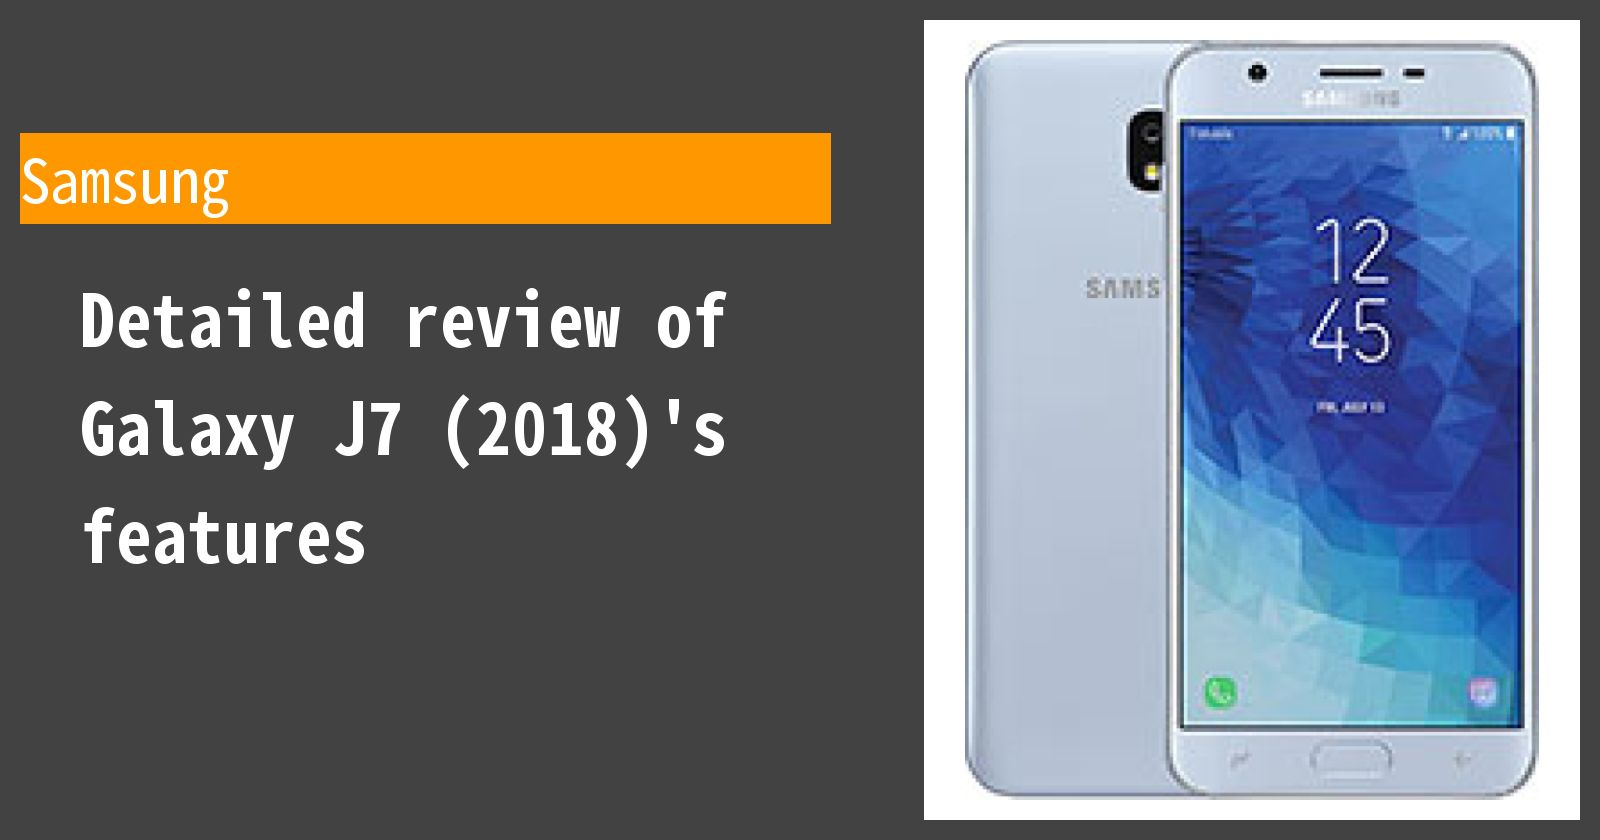 Detailed review of Galaxy J7 (2018)'s features